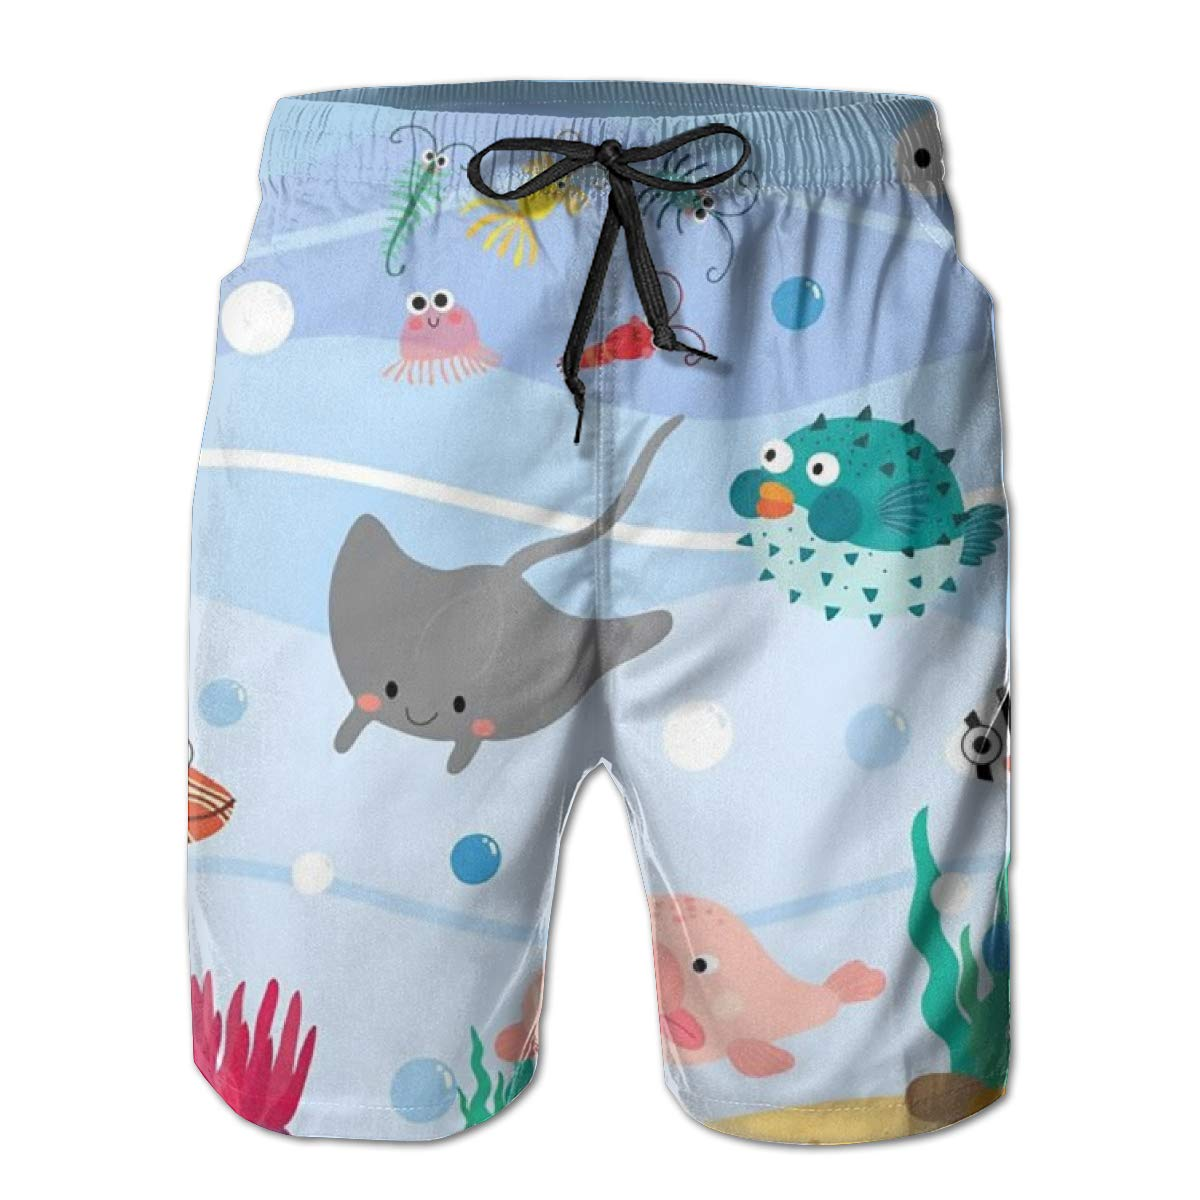 Ocean Animals Cartoon Beach Shorts Quick Dry Swimming Trunks Mens Cozy Summer Surf Swim Trunks Beach Pants with Pockets